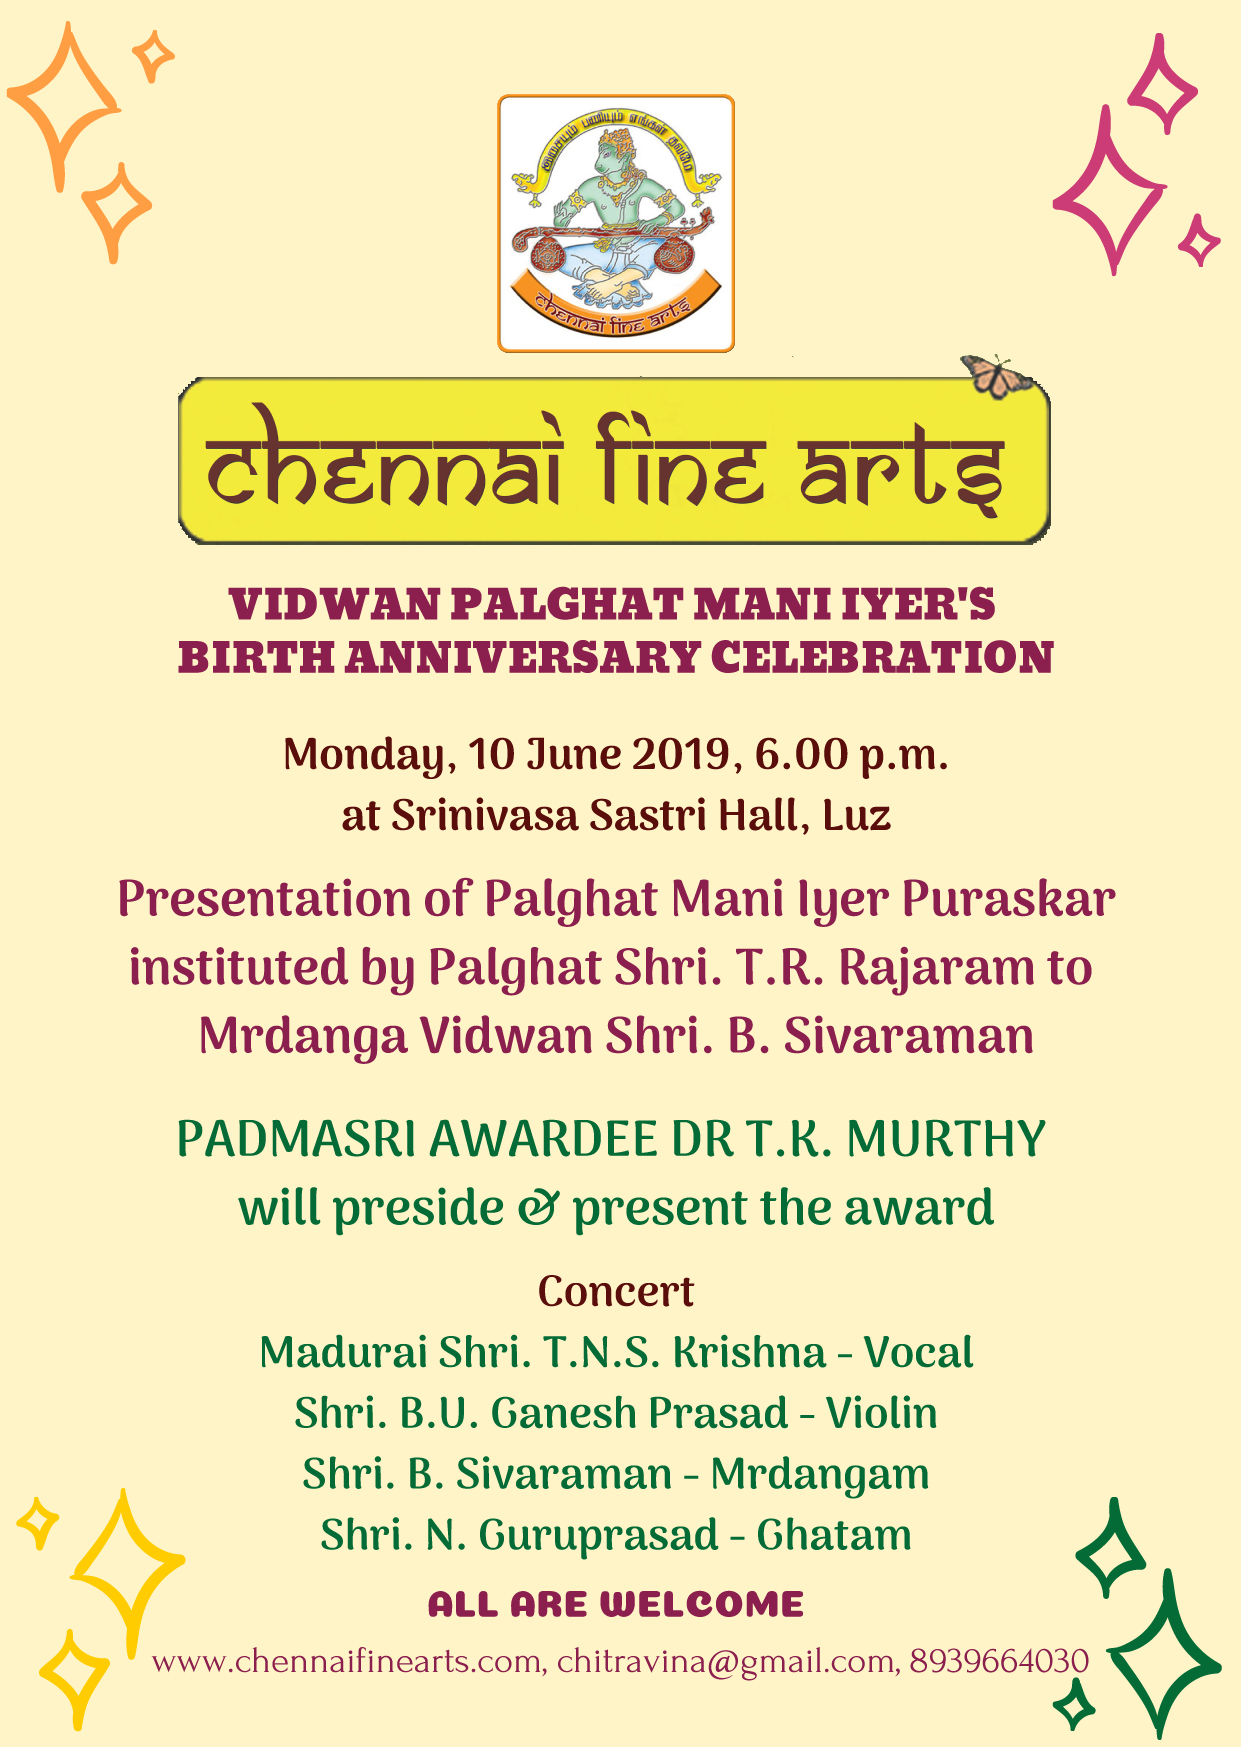 Vidwan Palghat Mani Iyer's Birth Anniversary Celebration